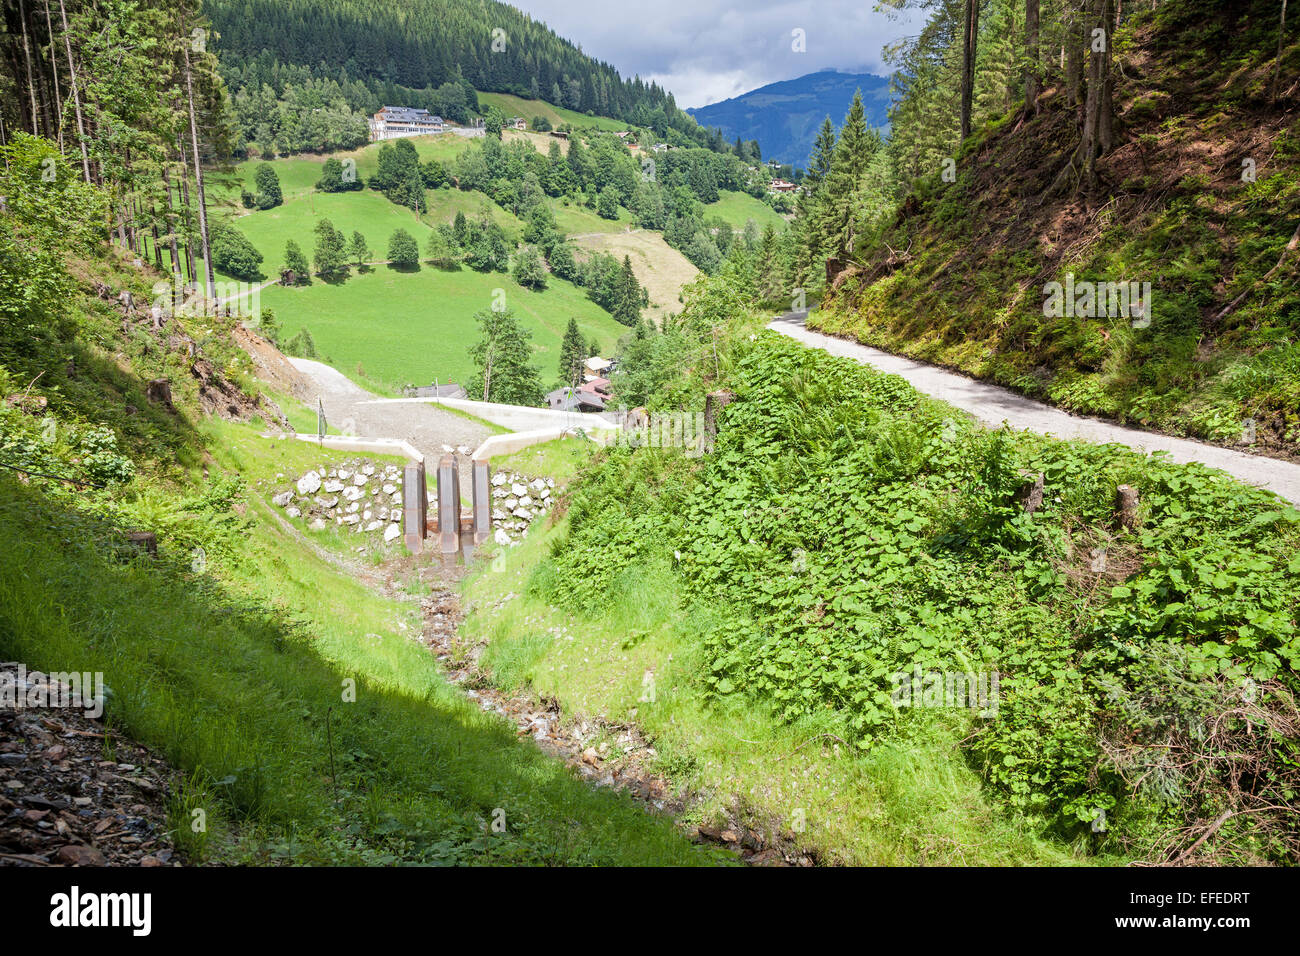 Flood prevention measures next to the path to the top of the Schmittenhöhe Zell am See Austria in summer - Stock Image